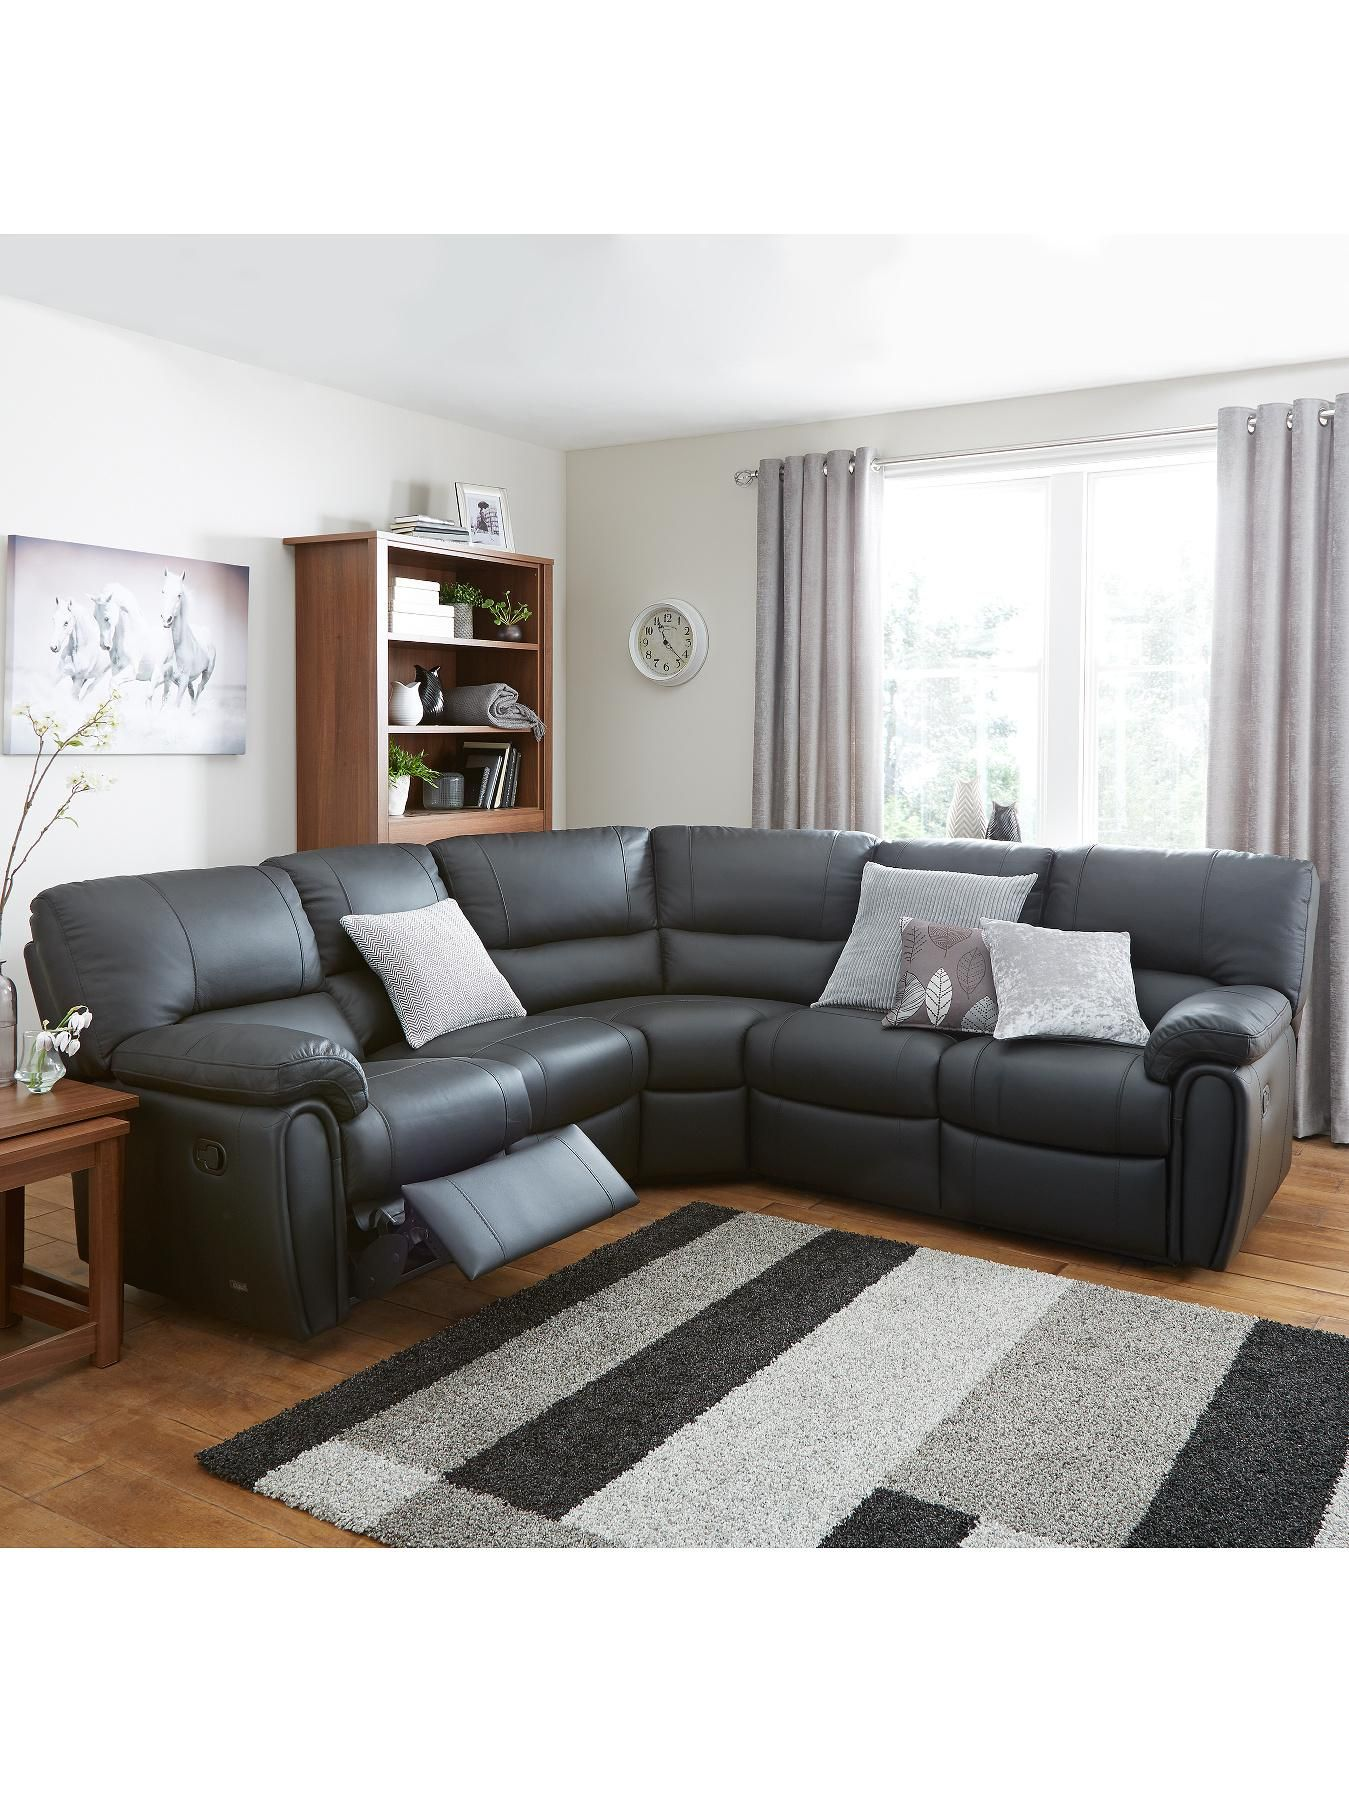 Violino Leighton Leather/Faux Leather Reclining Corner Group Sofa ...